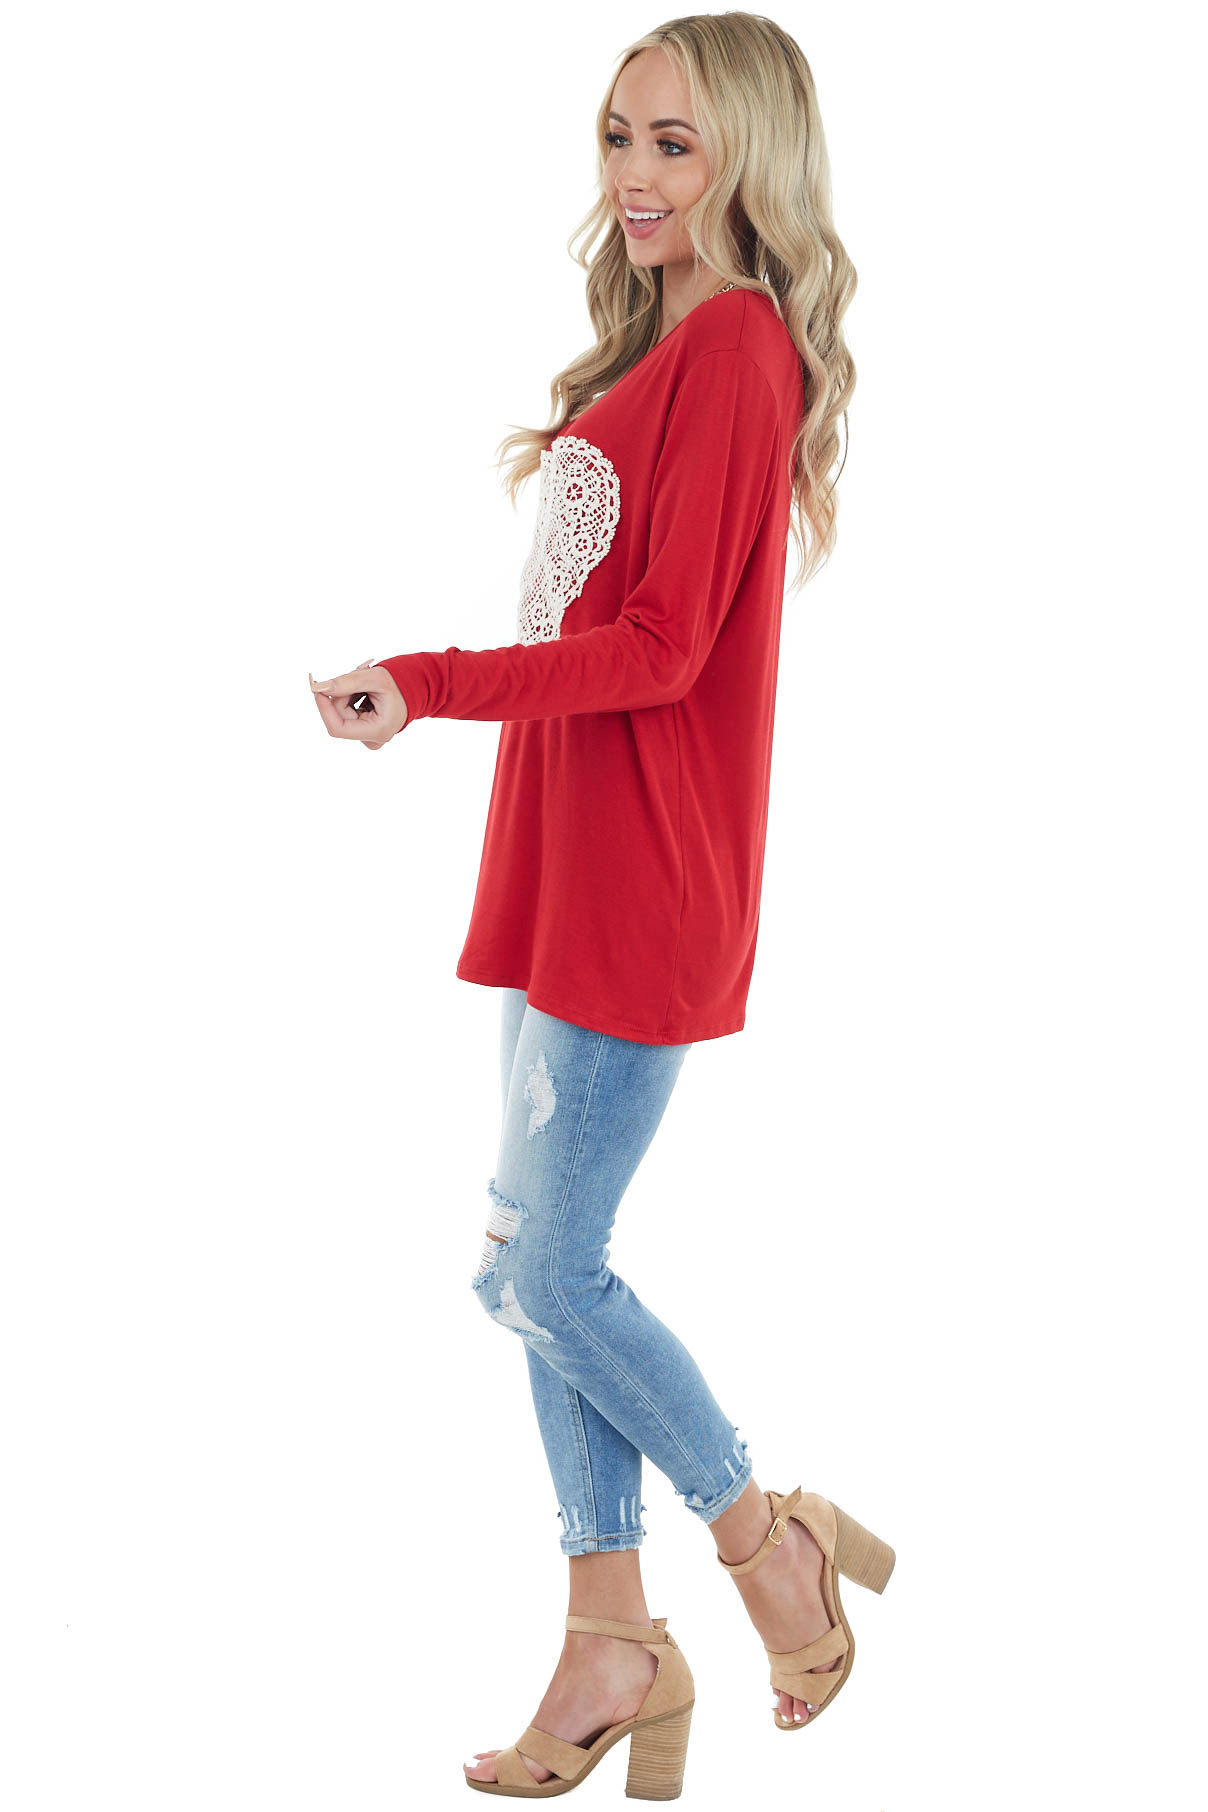 Candy Apple Red Long Sleeve Top With Crochet Lace Heart